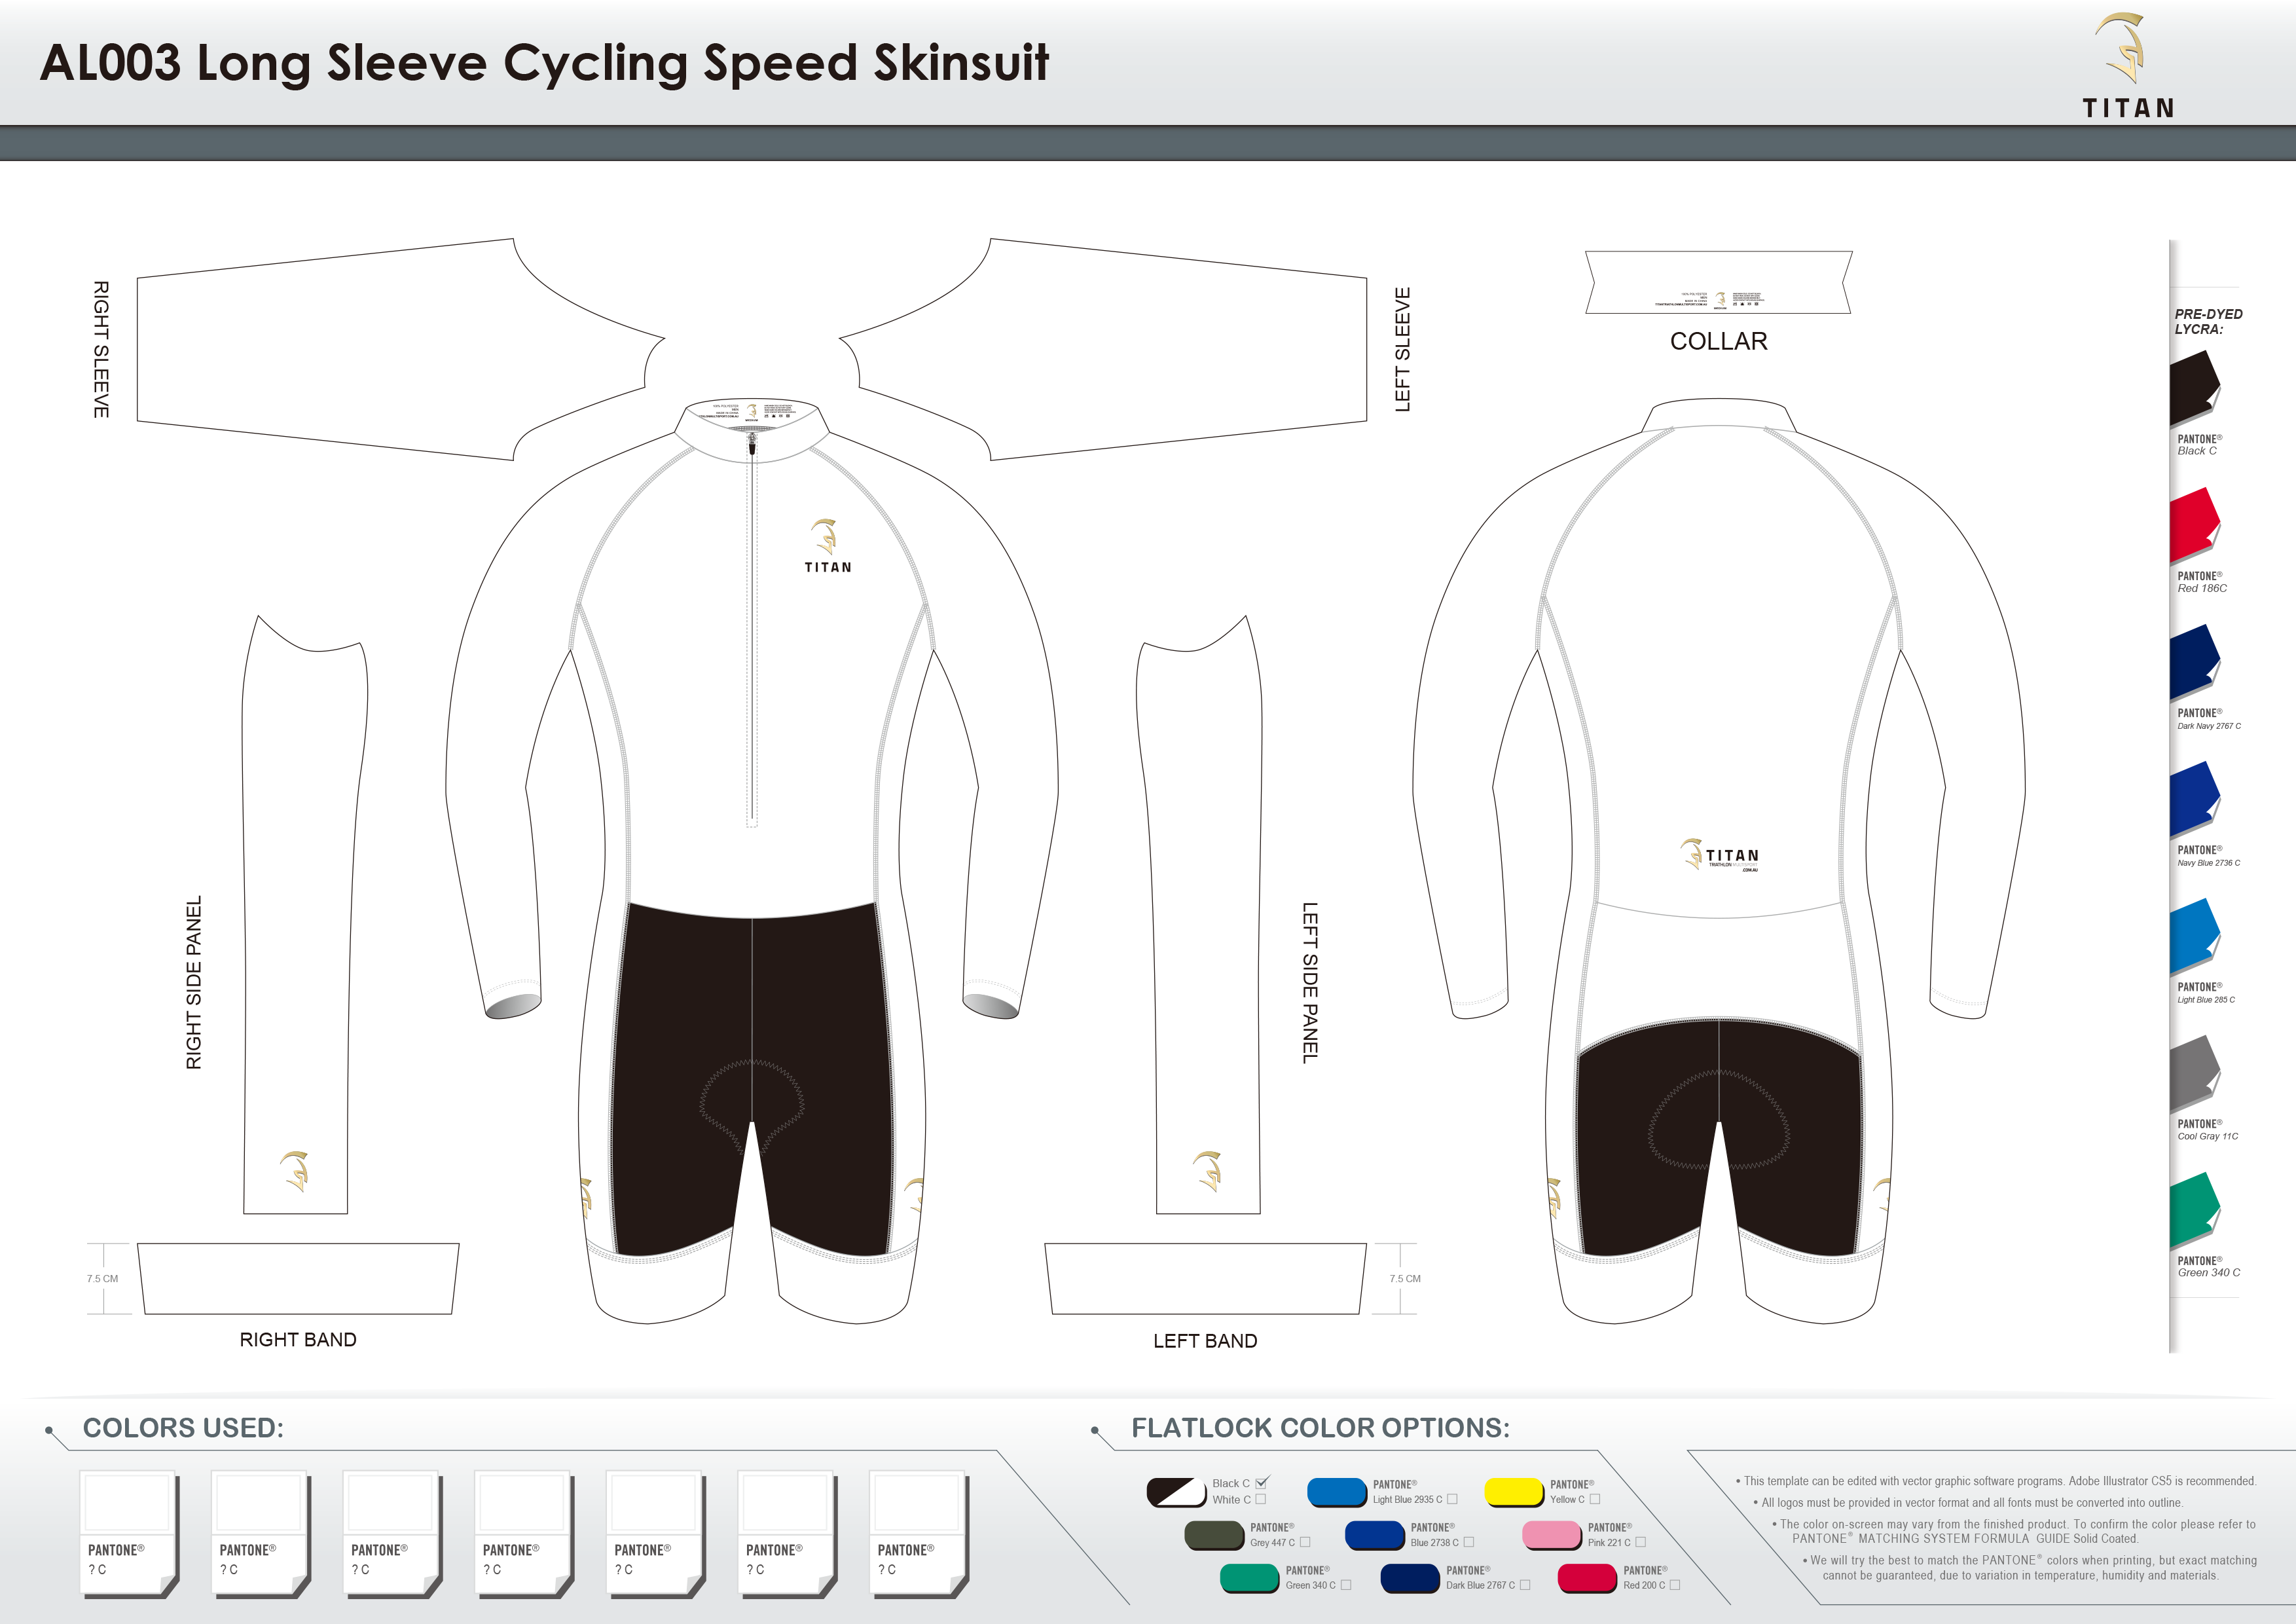 AL003 SS Cycling Speed Skinsuit